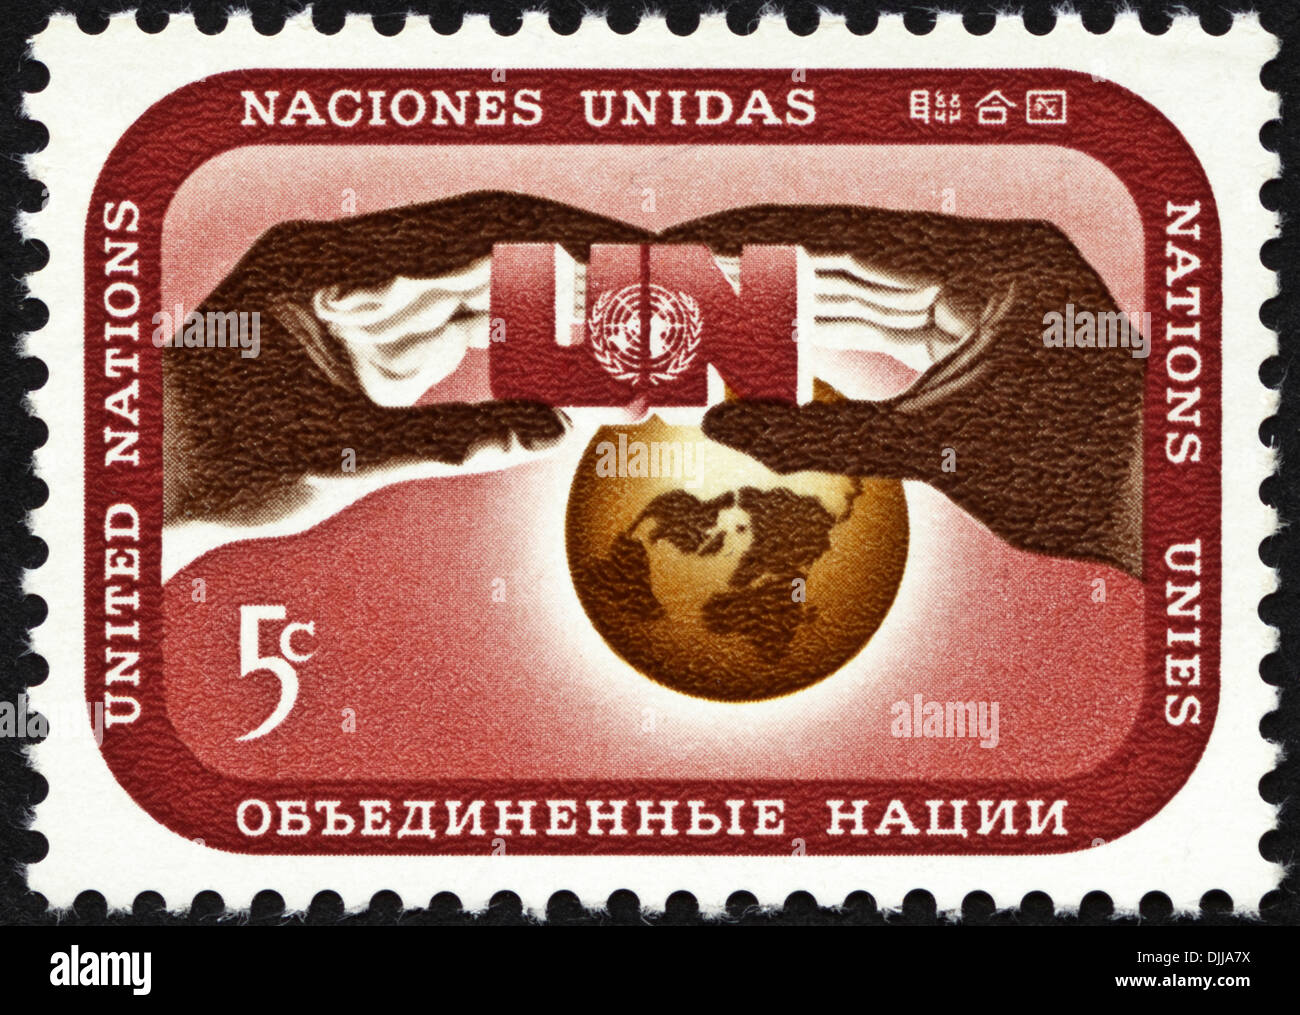 postage stamp United Nations 5c featuring hands UN & Earth issued 1967 - Stock Image